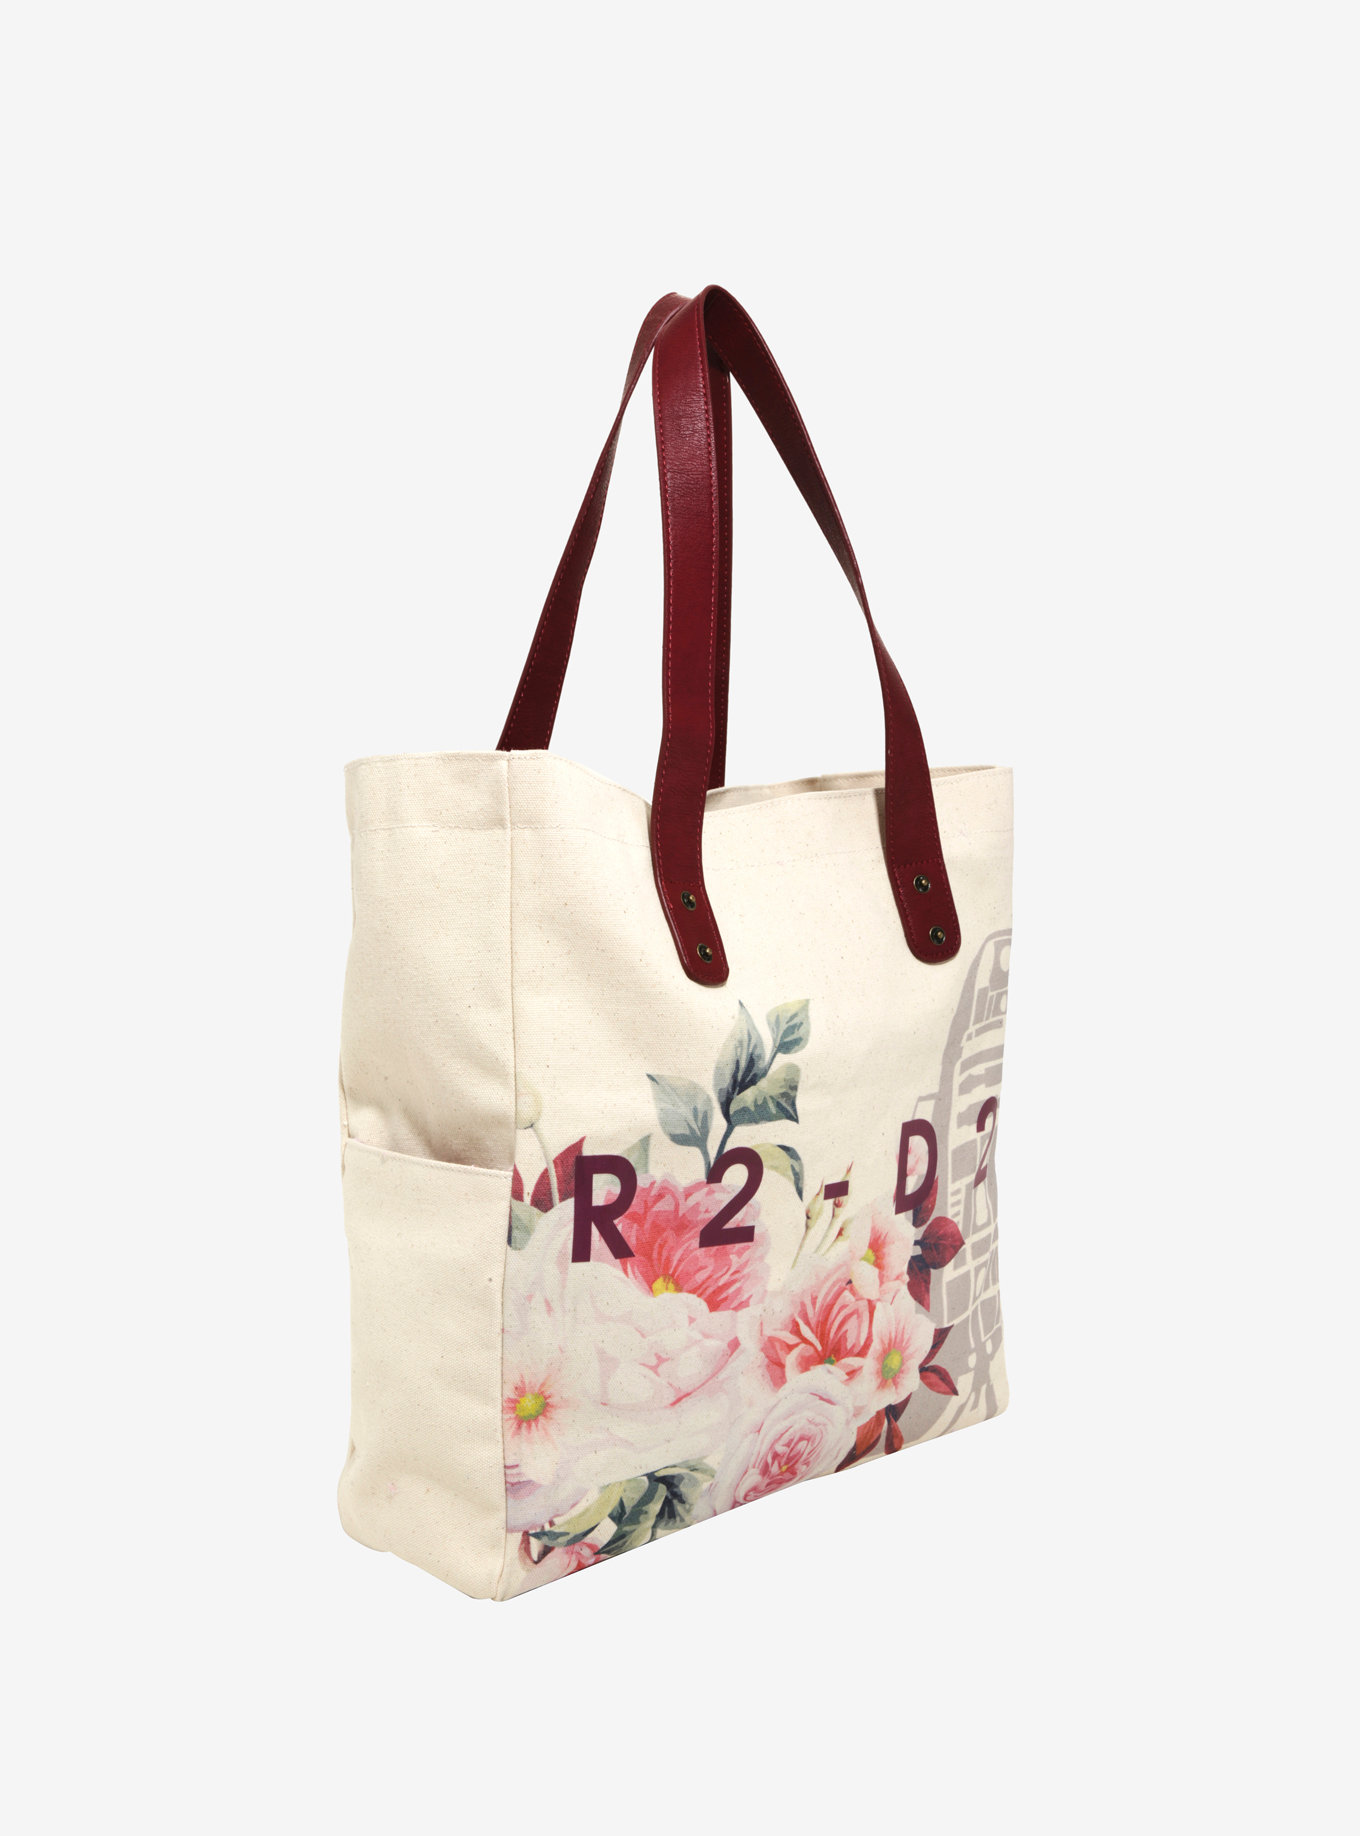 Loungefly x Star Wars R2-D2 Floral Tote Bag at Box Lunch